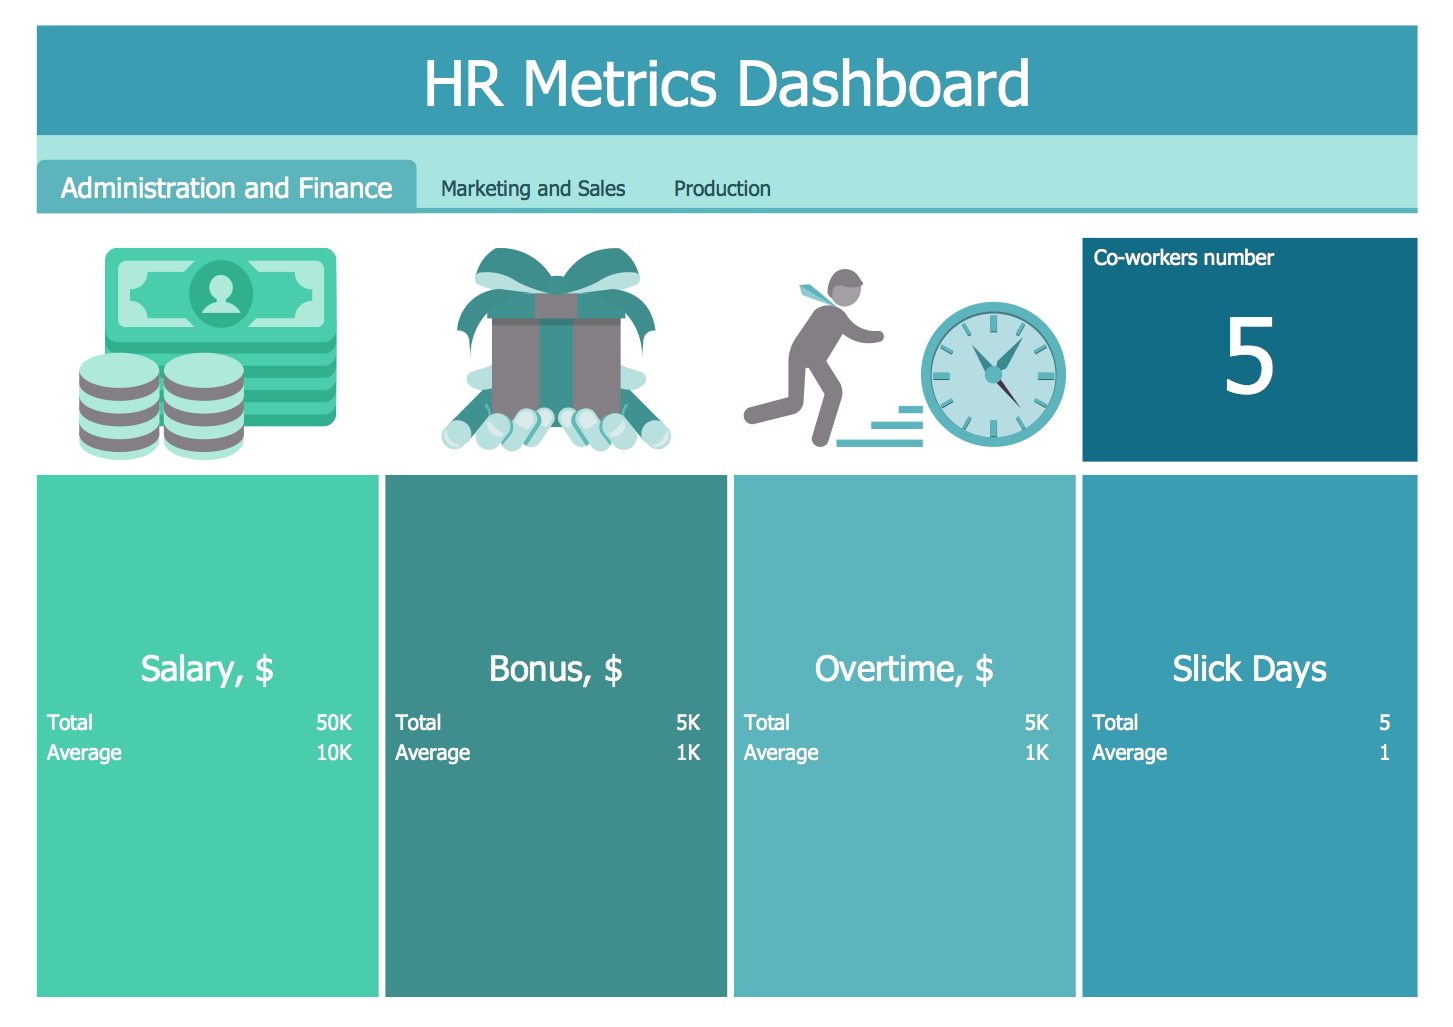 HR Metrics Dashboard Template